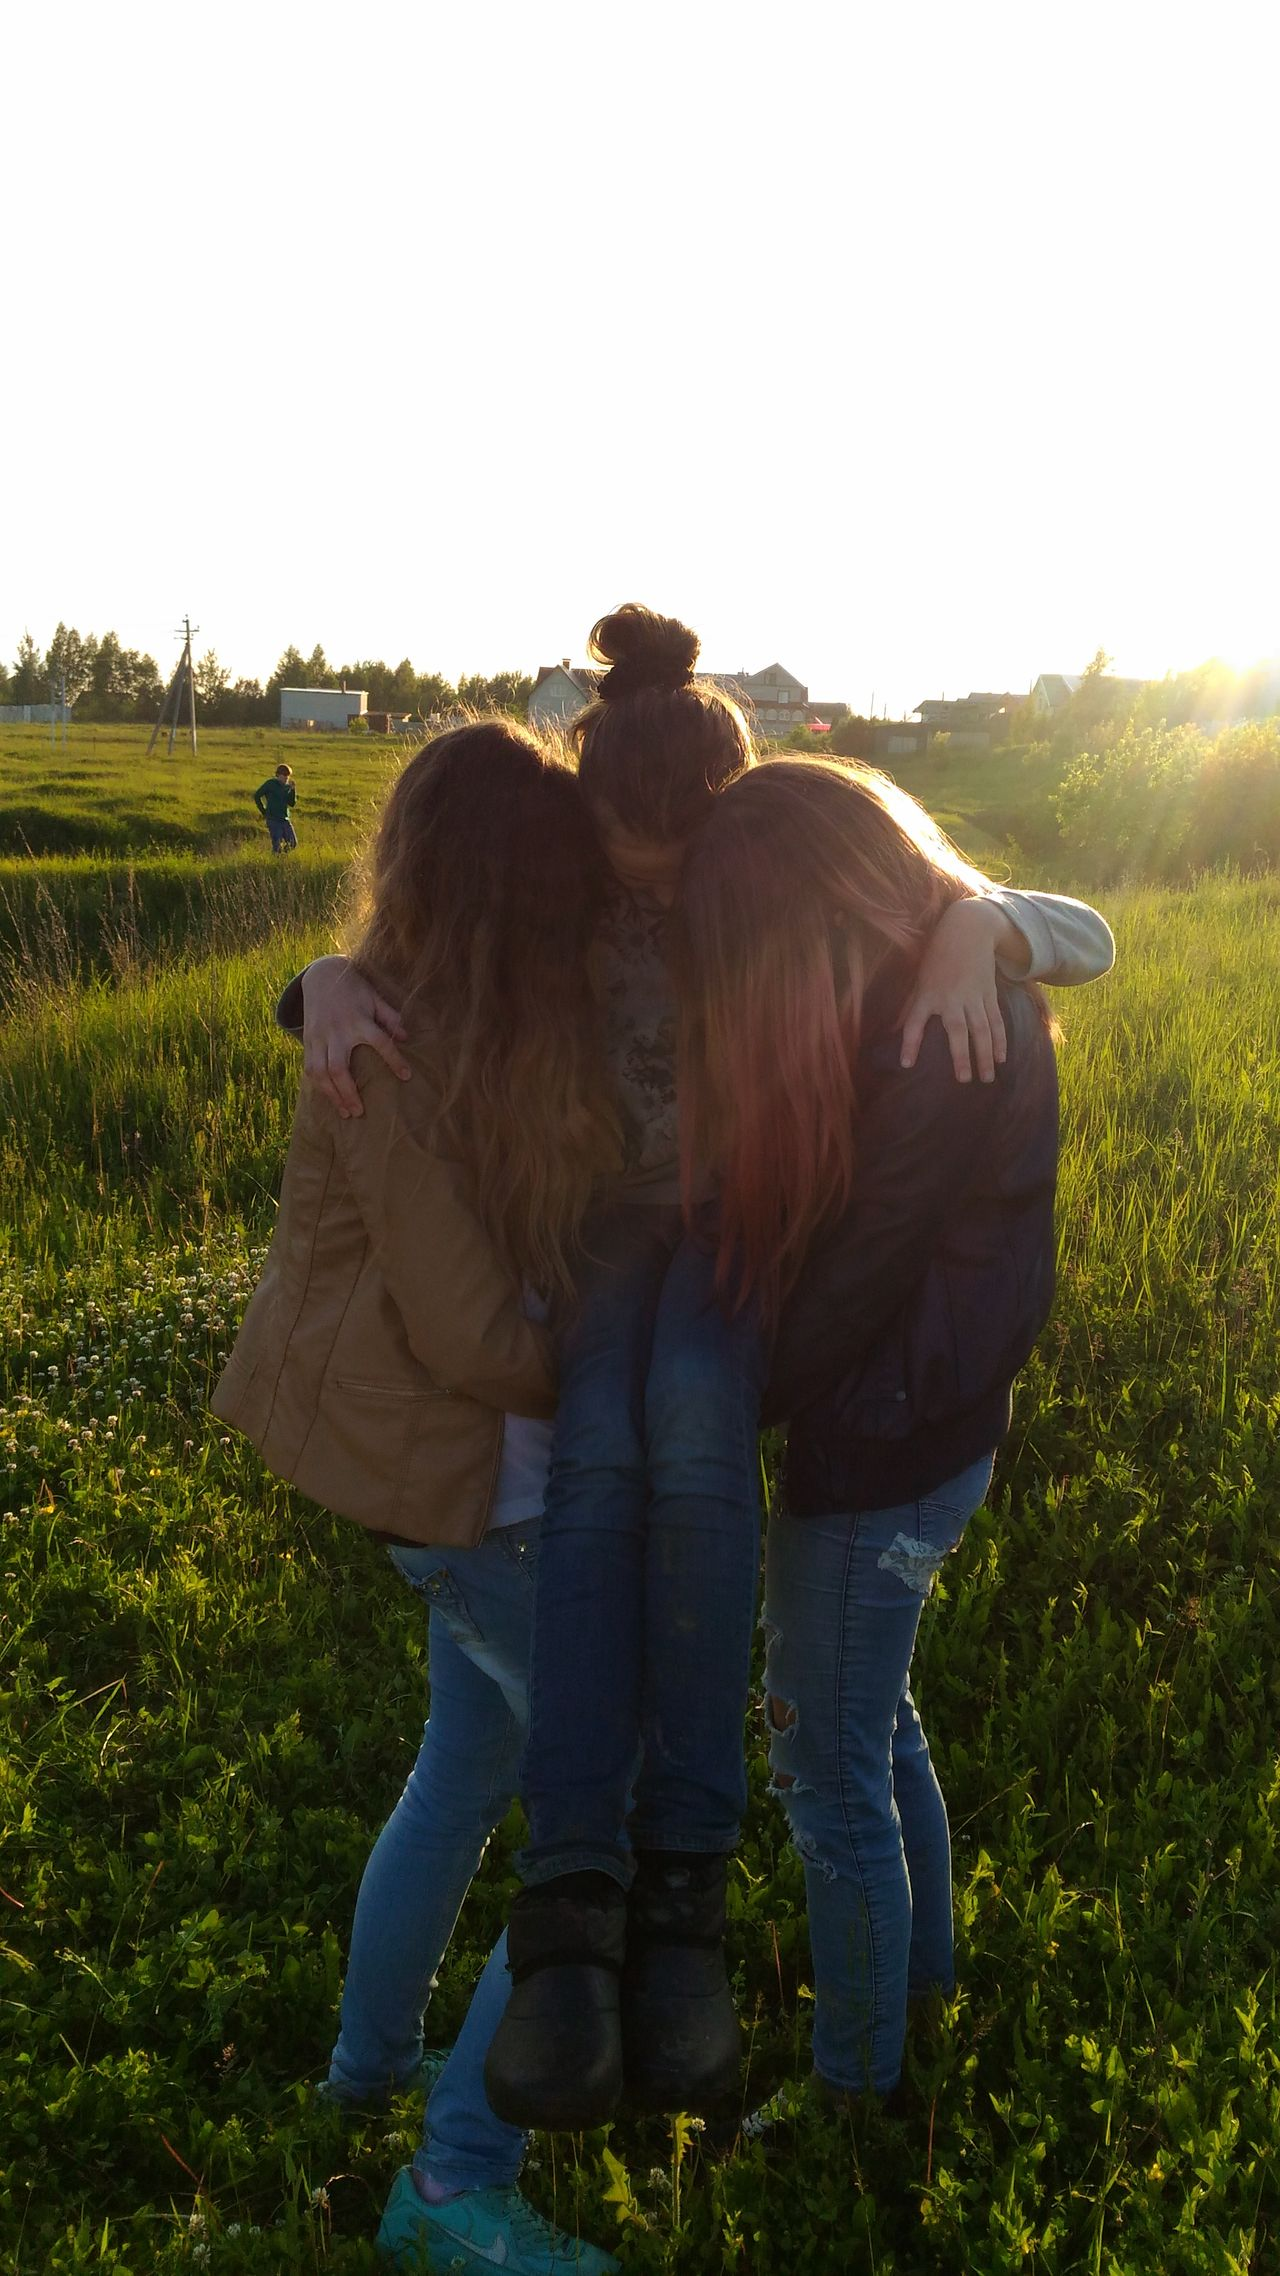 Sun Day Moscow Summer Field Beautiful Nature My Friends And Me Beautiful Girls  3 People 3 Girls 3 Girls Standing Together